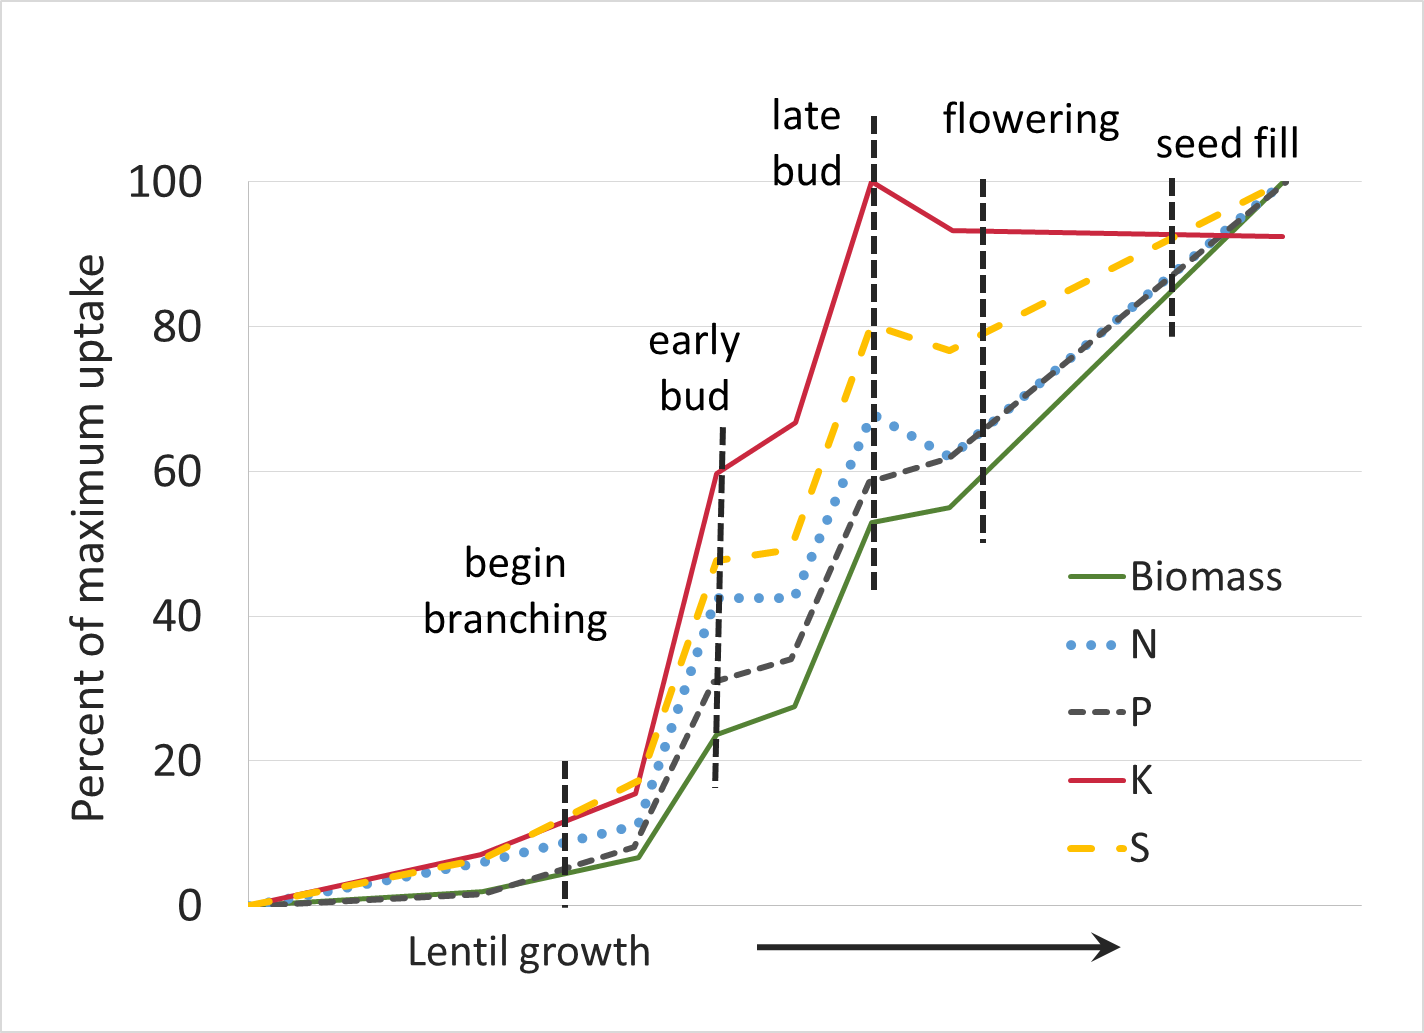 lentil nutrient uptake